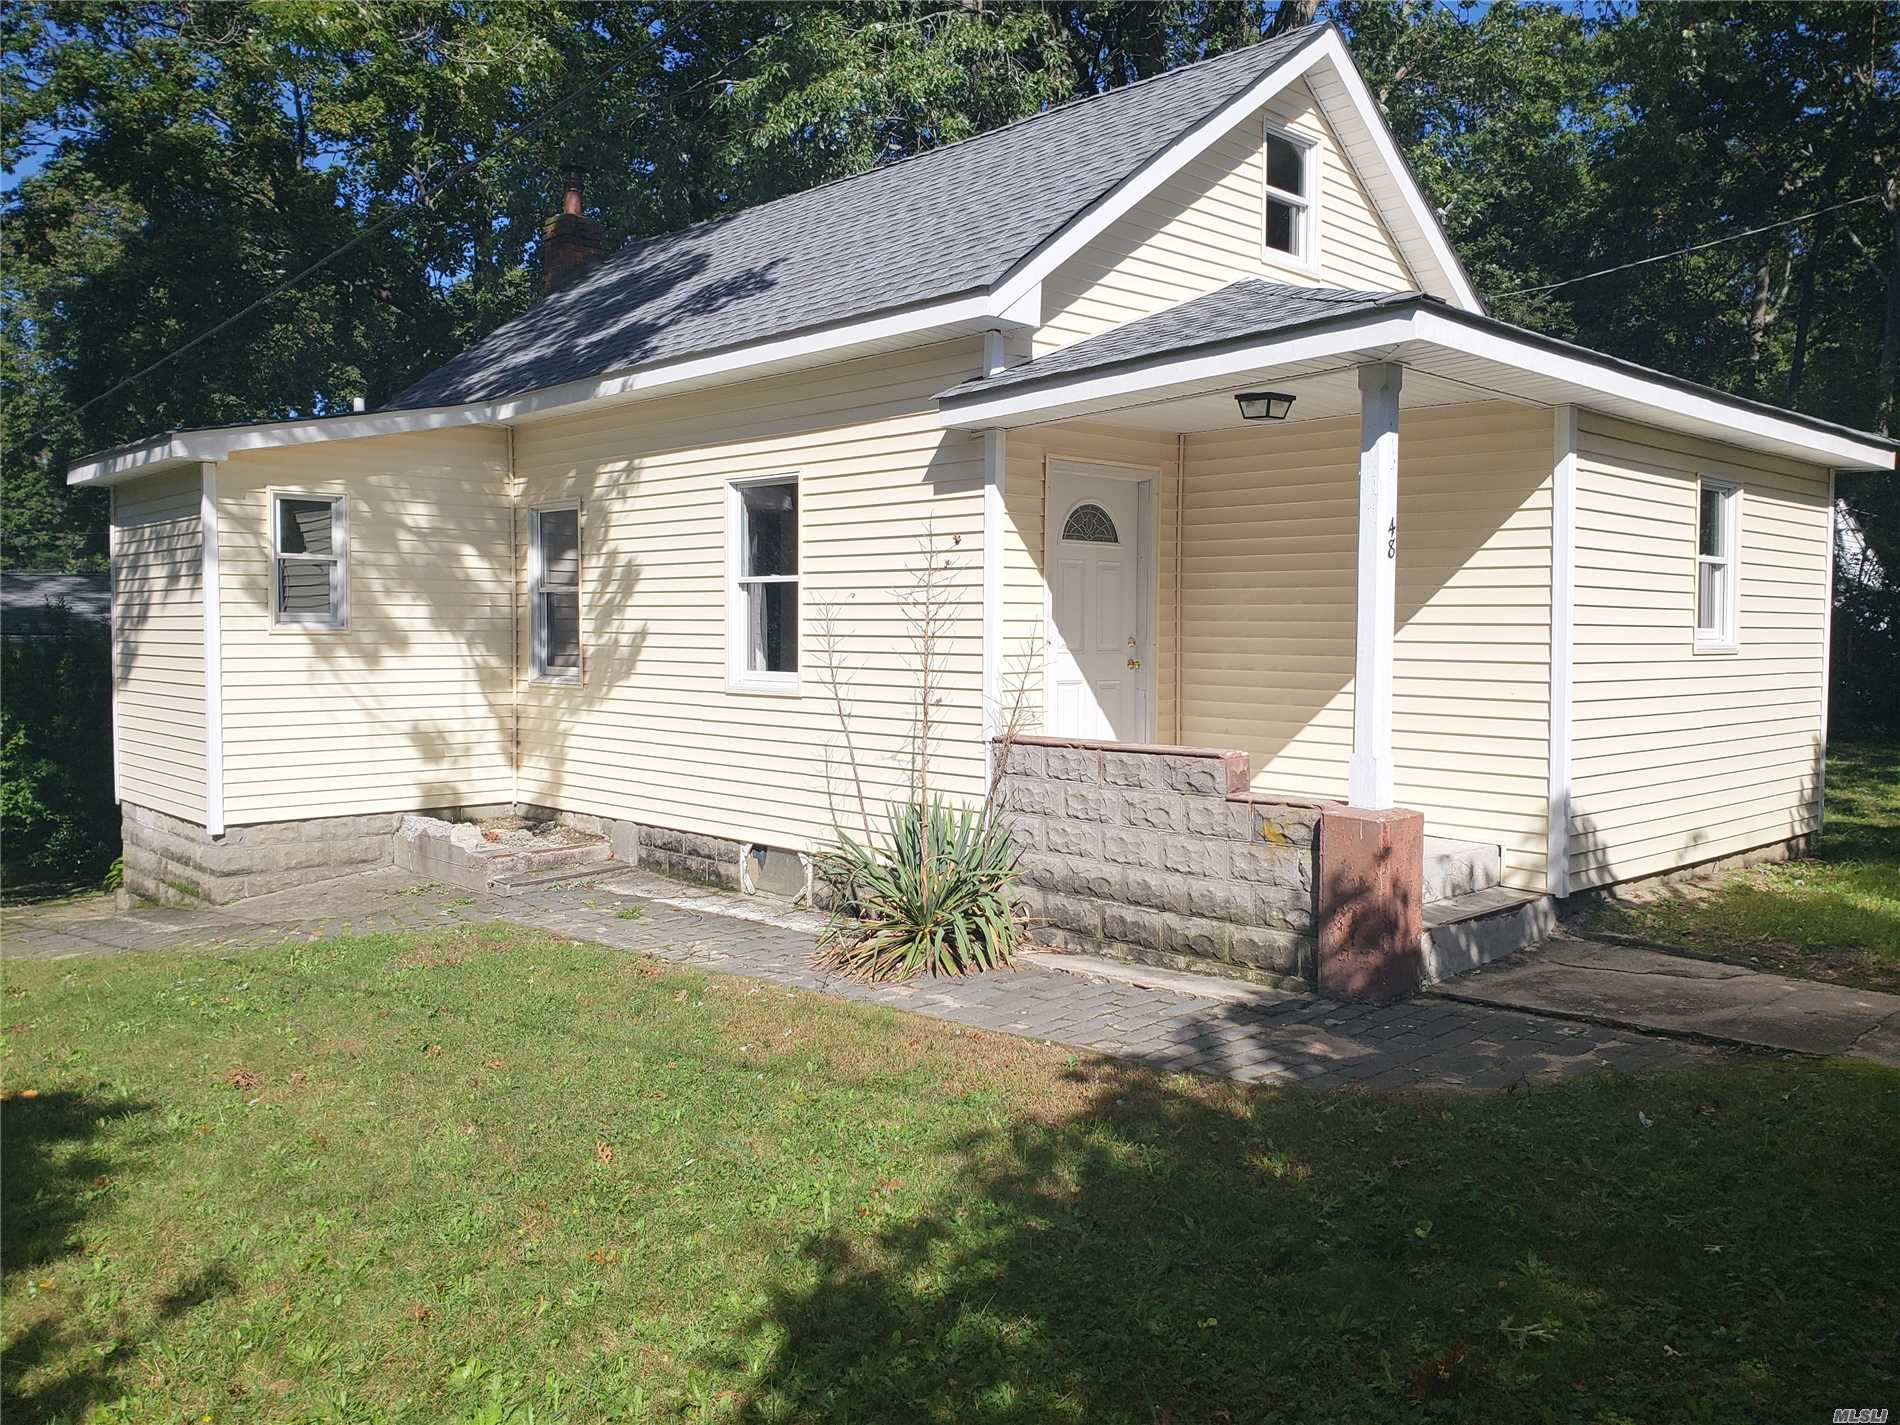 Beautifully Renovated Home Features All New Windows, Led Lighting, Appliances, Hardwood Floors, New Kitchen And Bath, Ample Closets And Full Use Of The Basement, That Also Includes Washer And Dryer Hookups Along With Additional Storage Space.